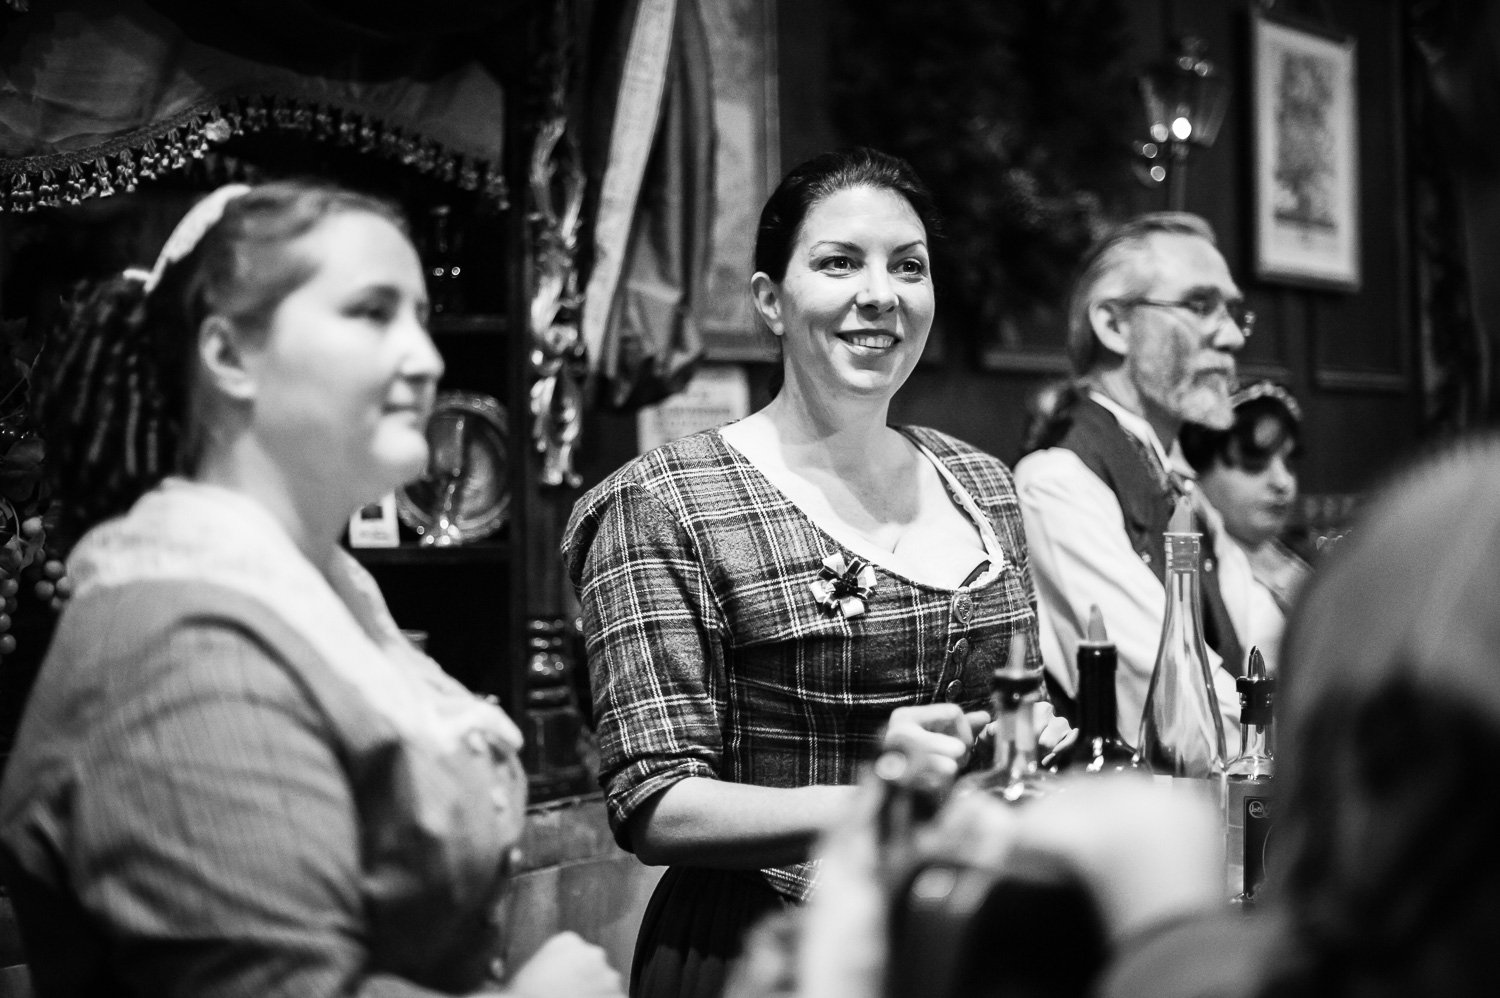 The Great Christmas Dickens Fair // Ashley Petersen Photo